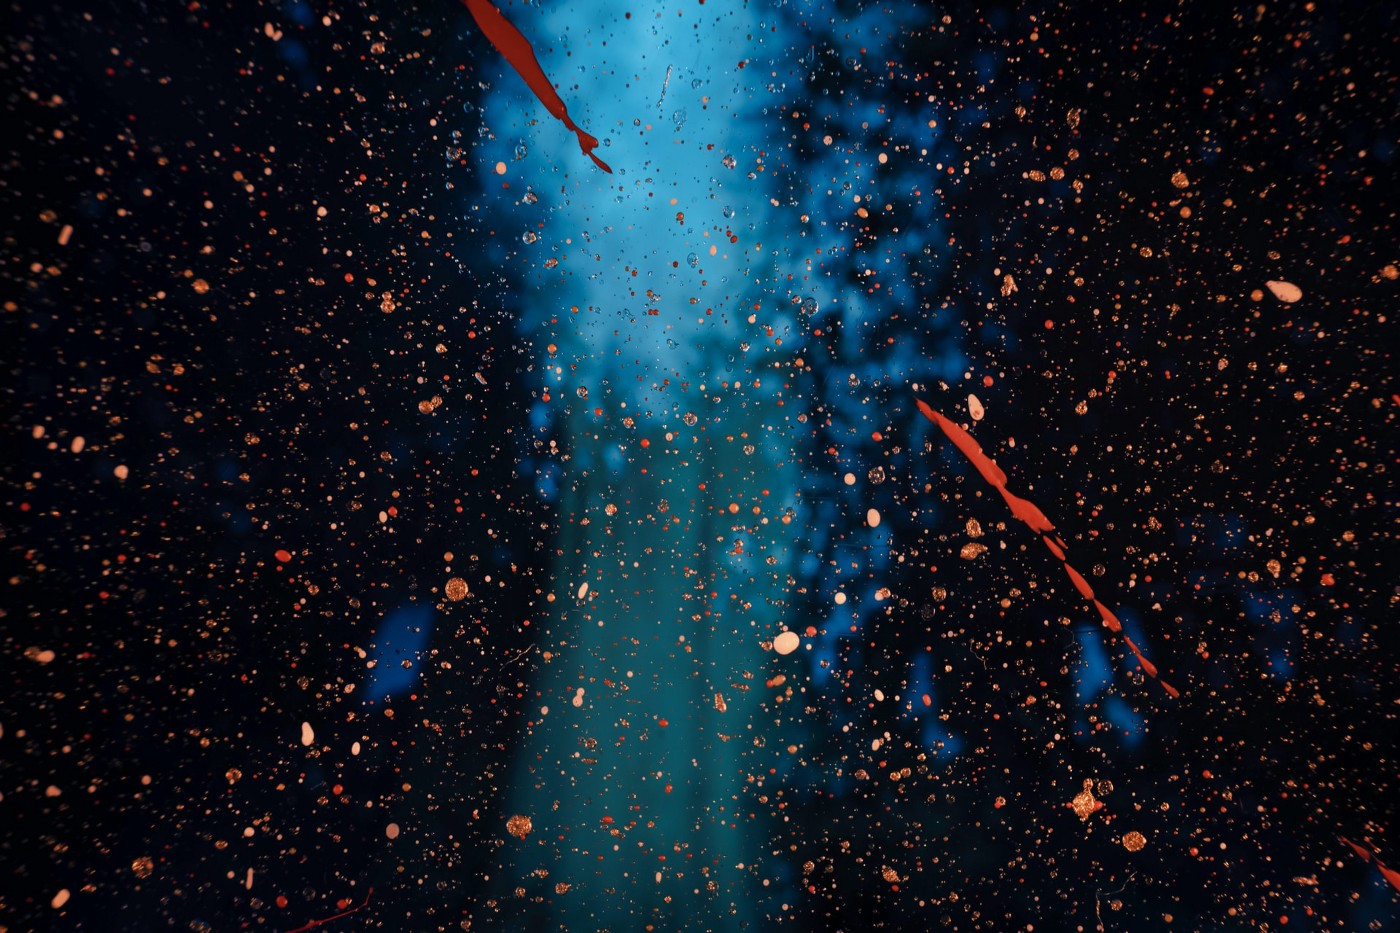 An explosion of red particles hover on a blue column on a black background.